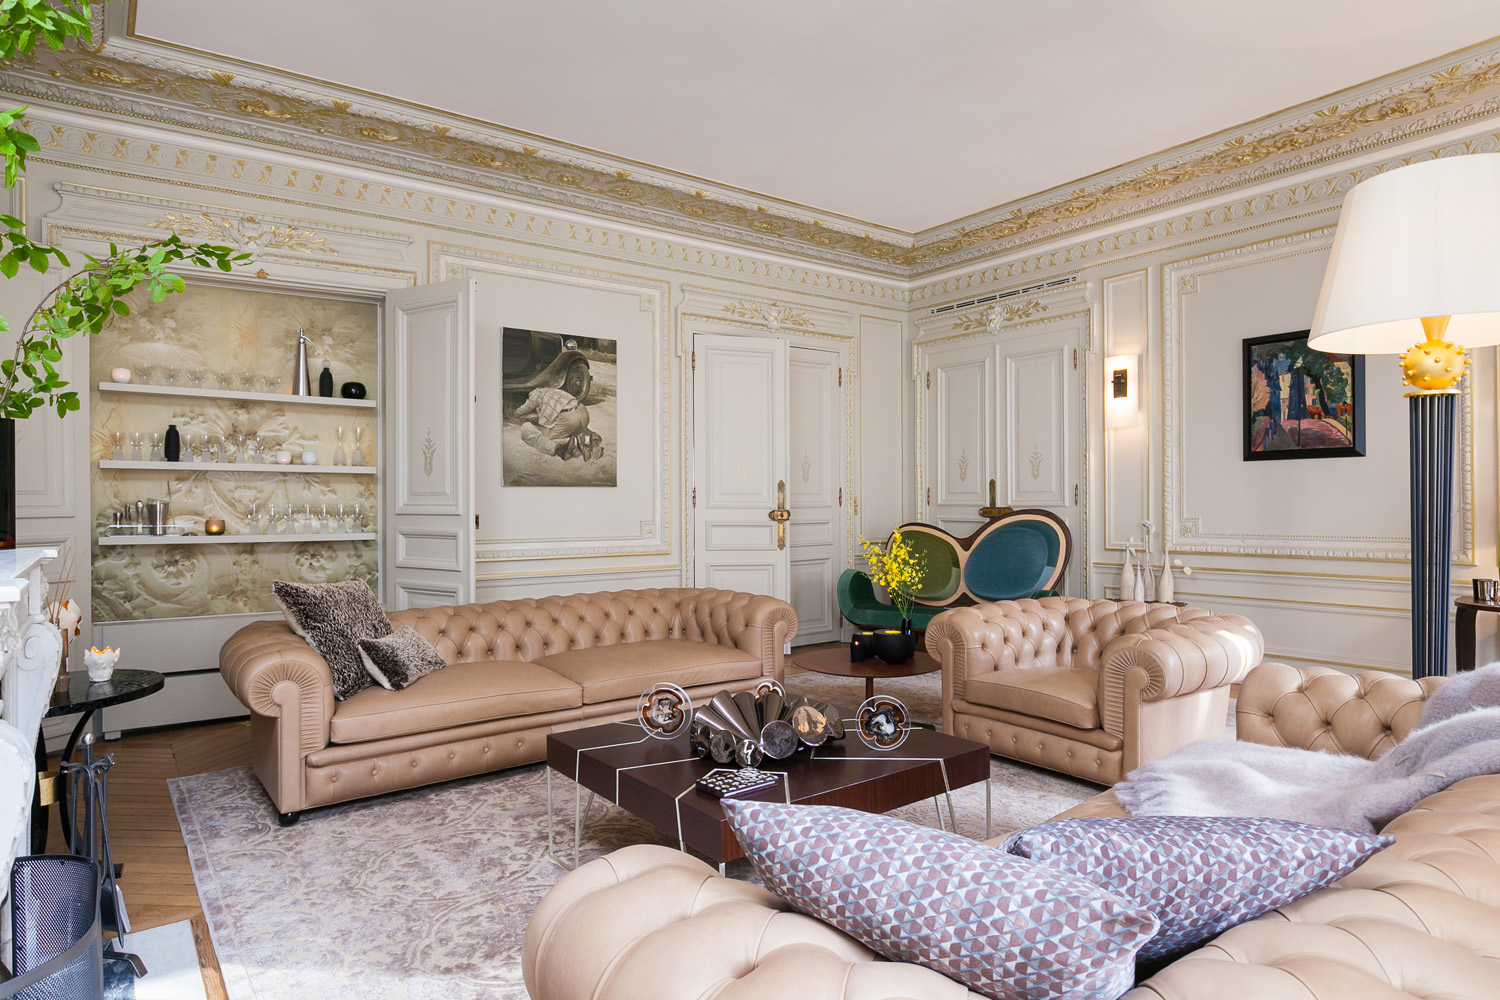 Paris apartment: So frenchy, so chic